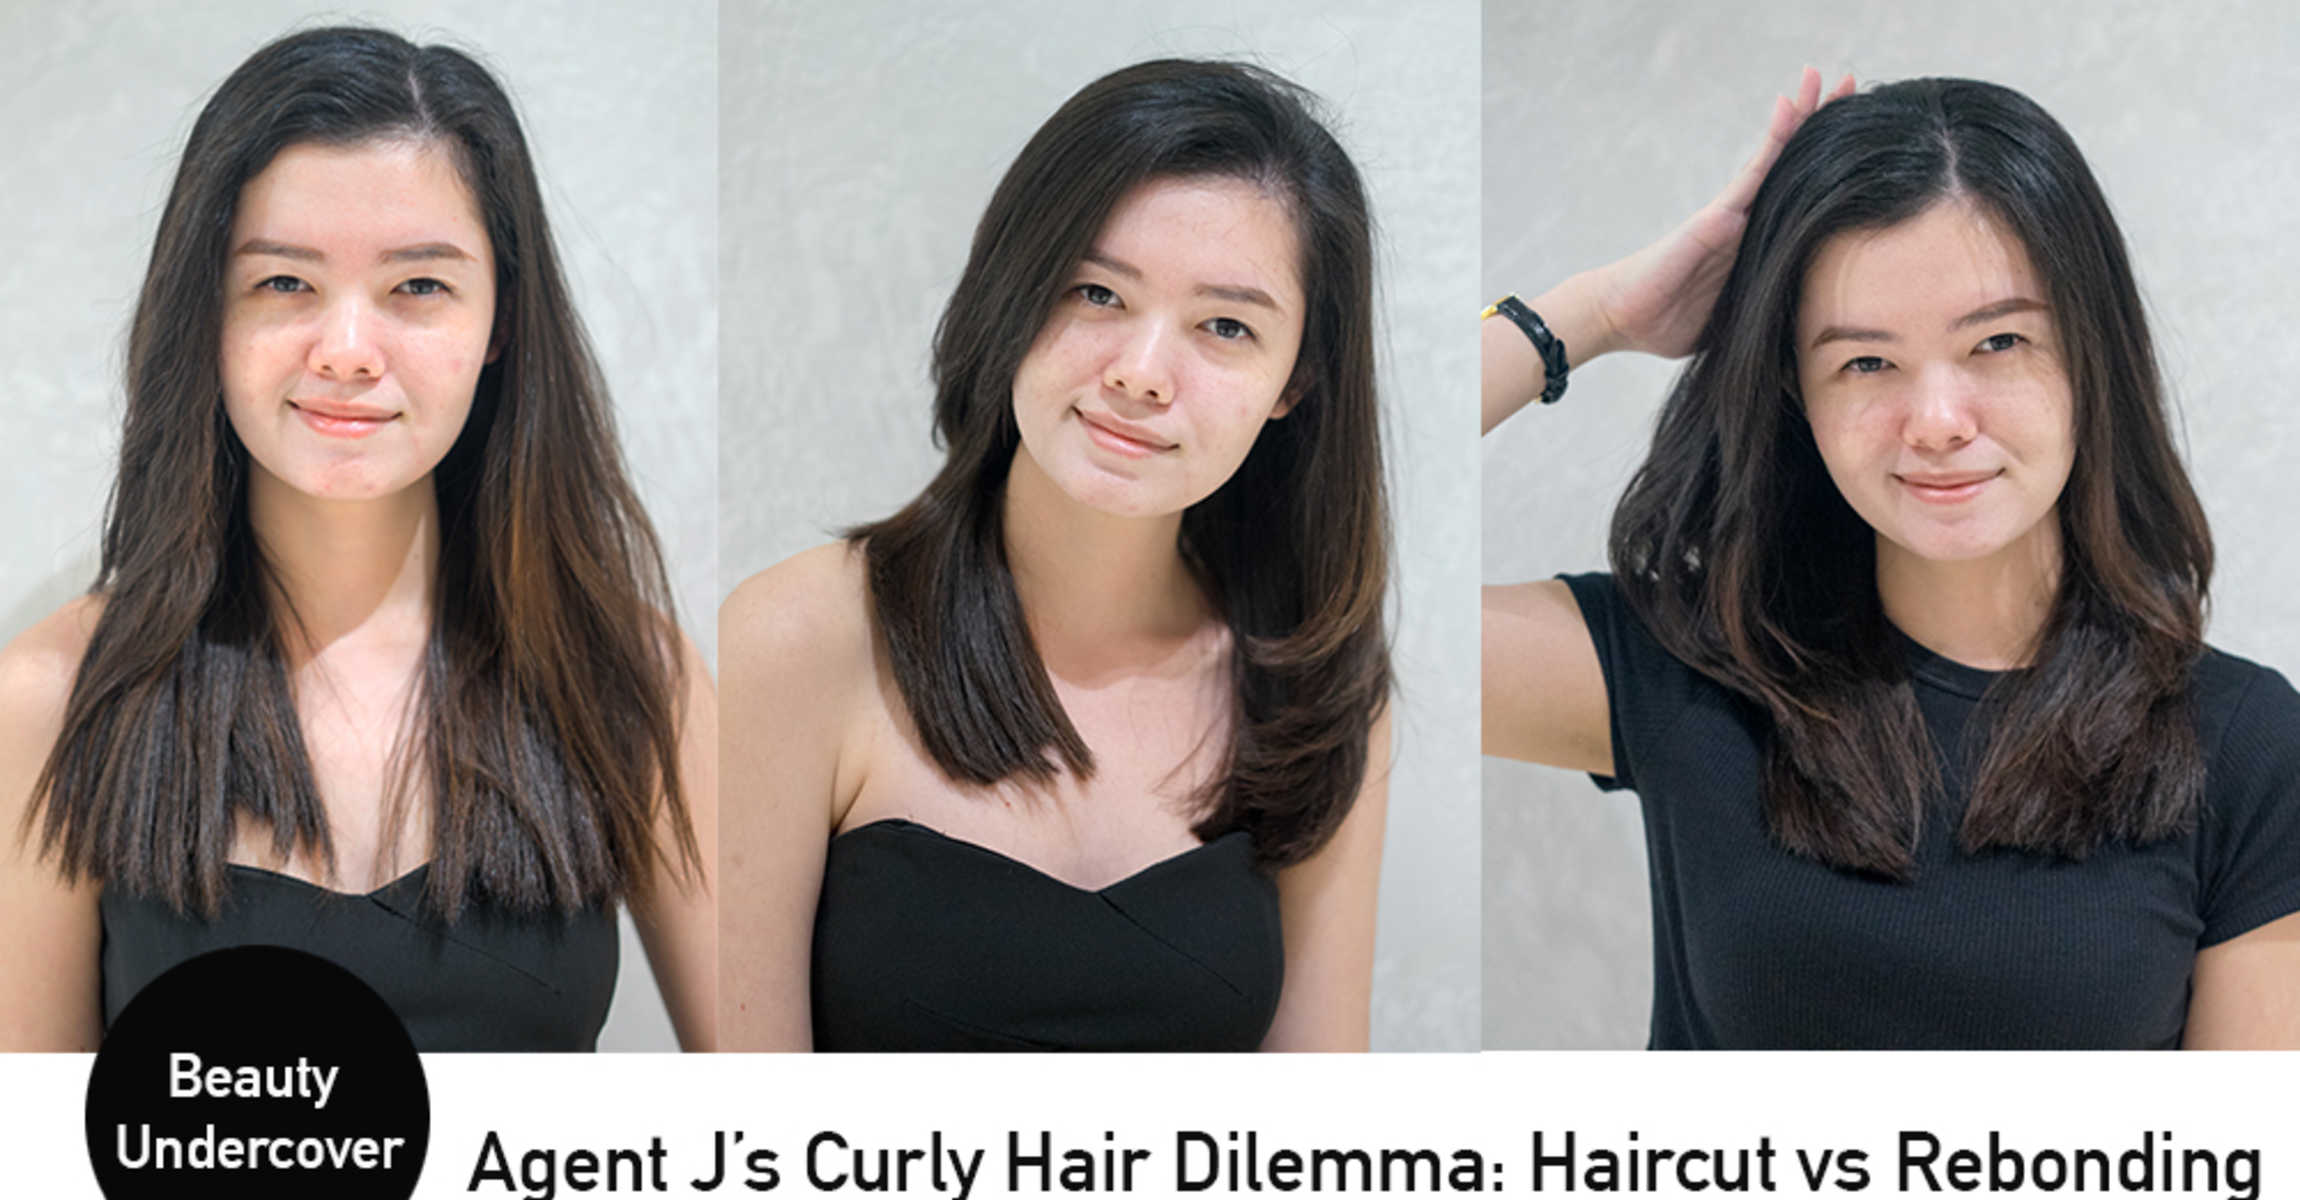 haircut vs rebonding: curly hair agent j tries both at gene by ginrich